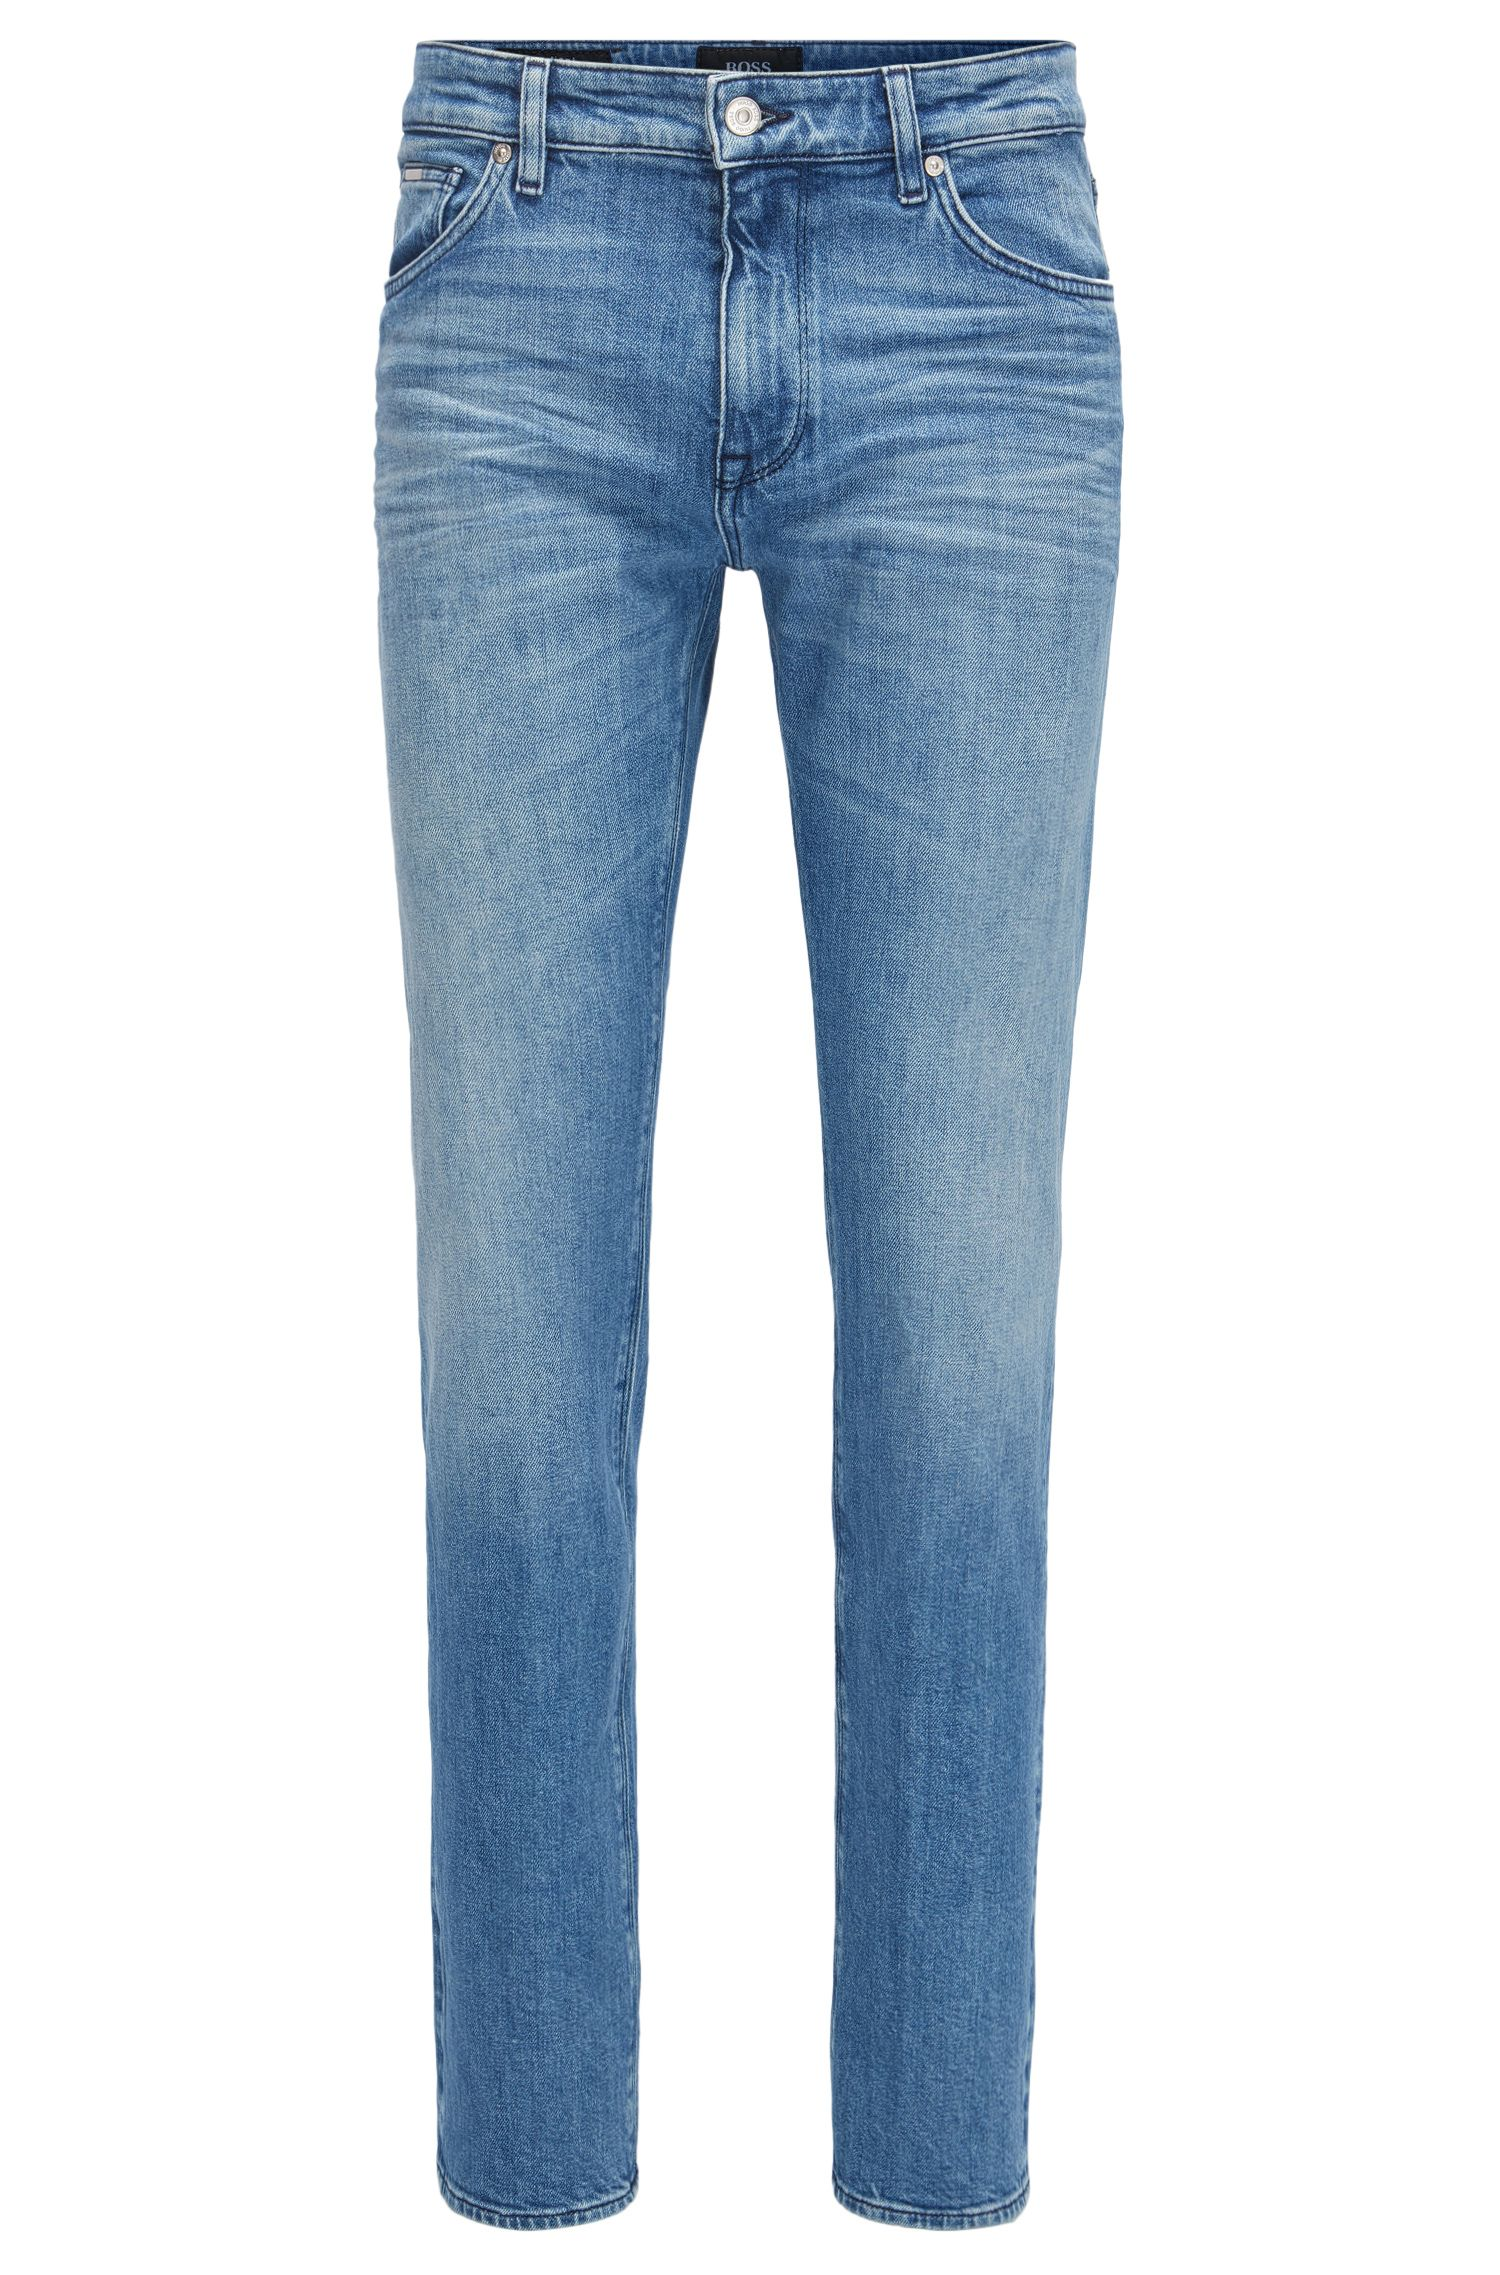 Jeans regular fit in denim elasticizzato blu acceso